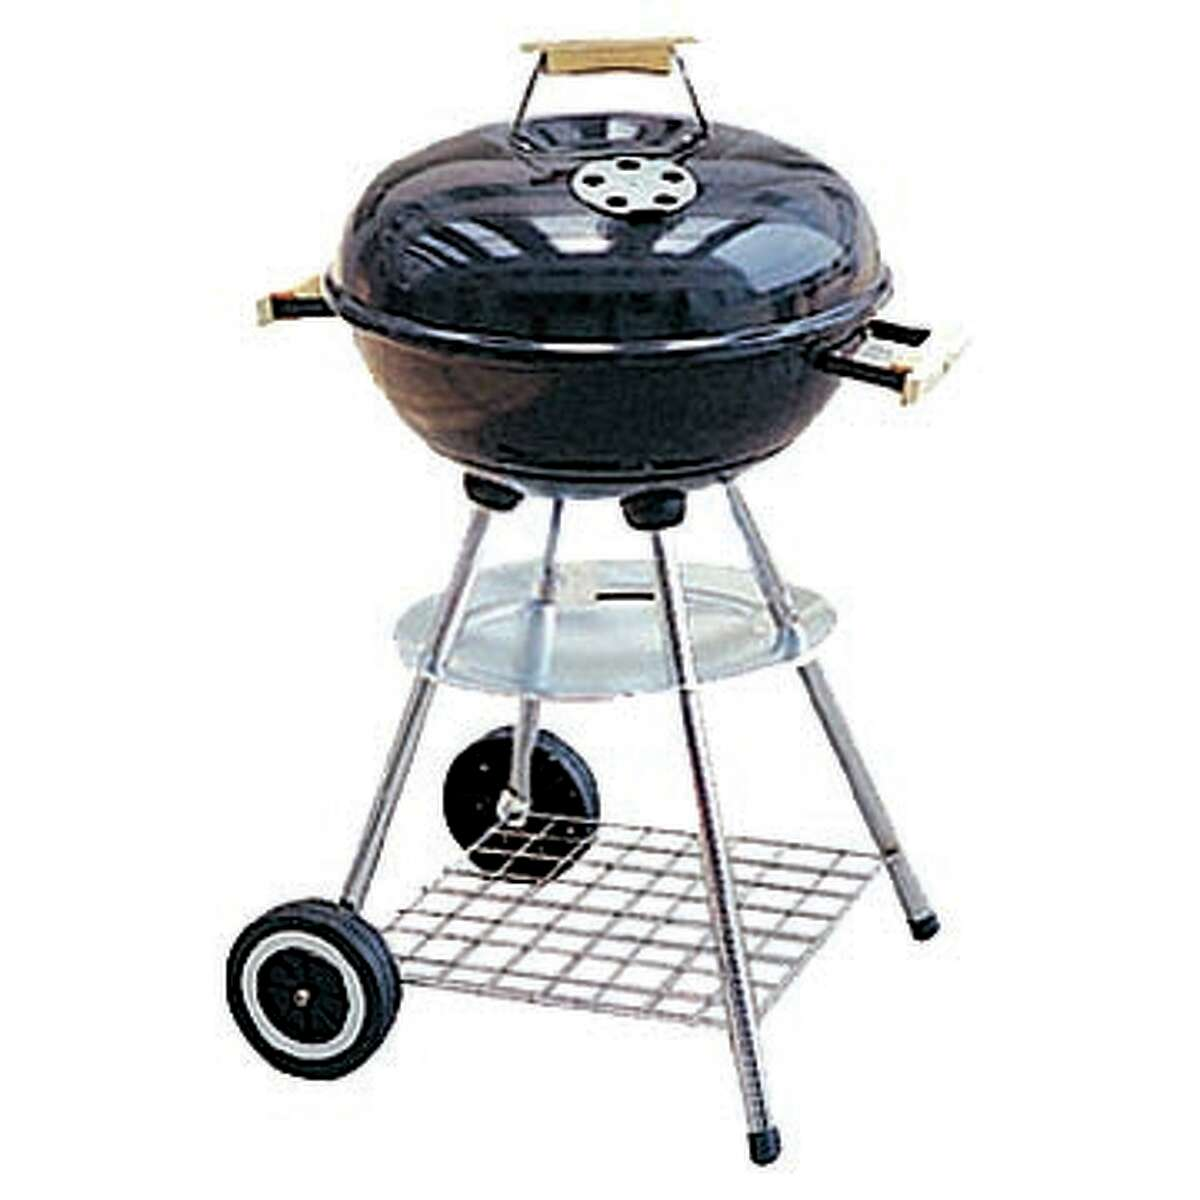 Make sure to keep an eye on the grill when it's heating. (Fotolia.com)